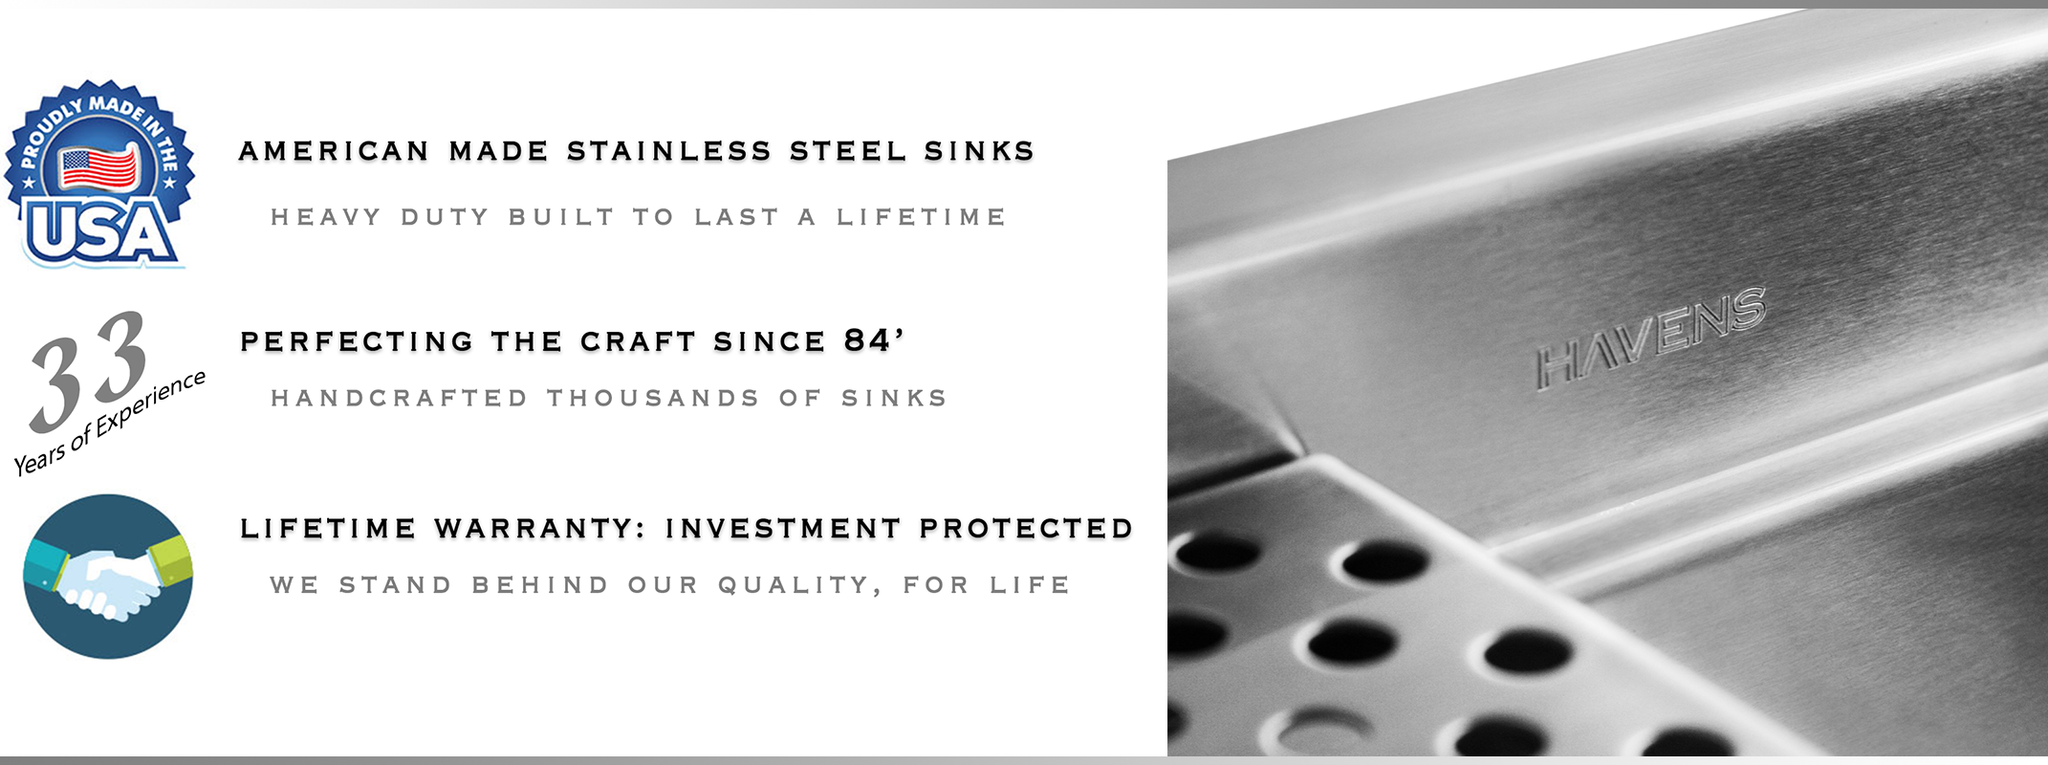 Kitchen Sinks For Less stainless steel kitchen sinks - havens metal